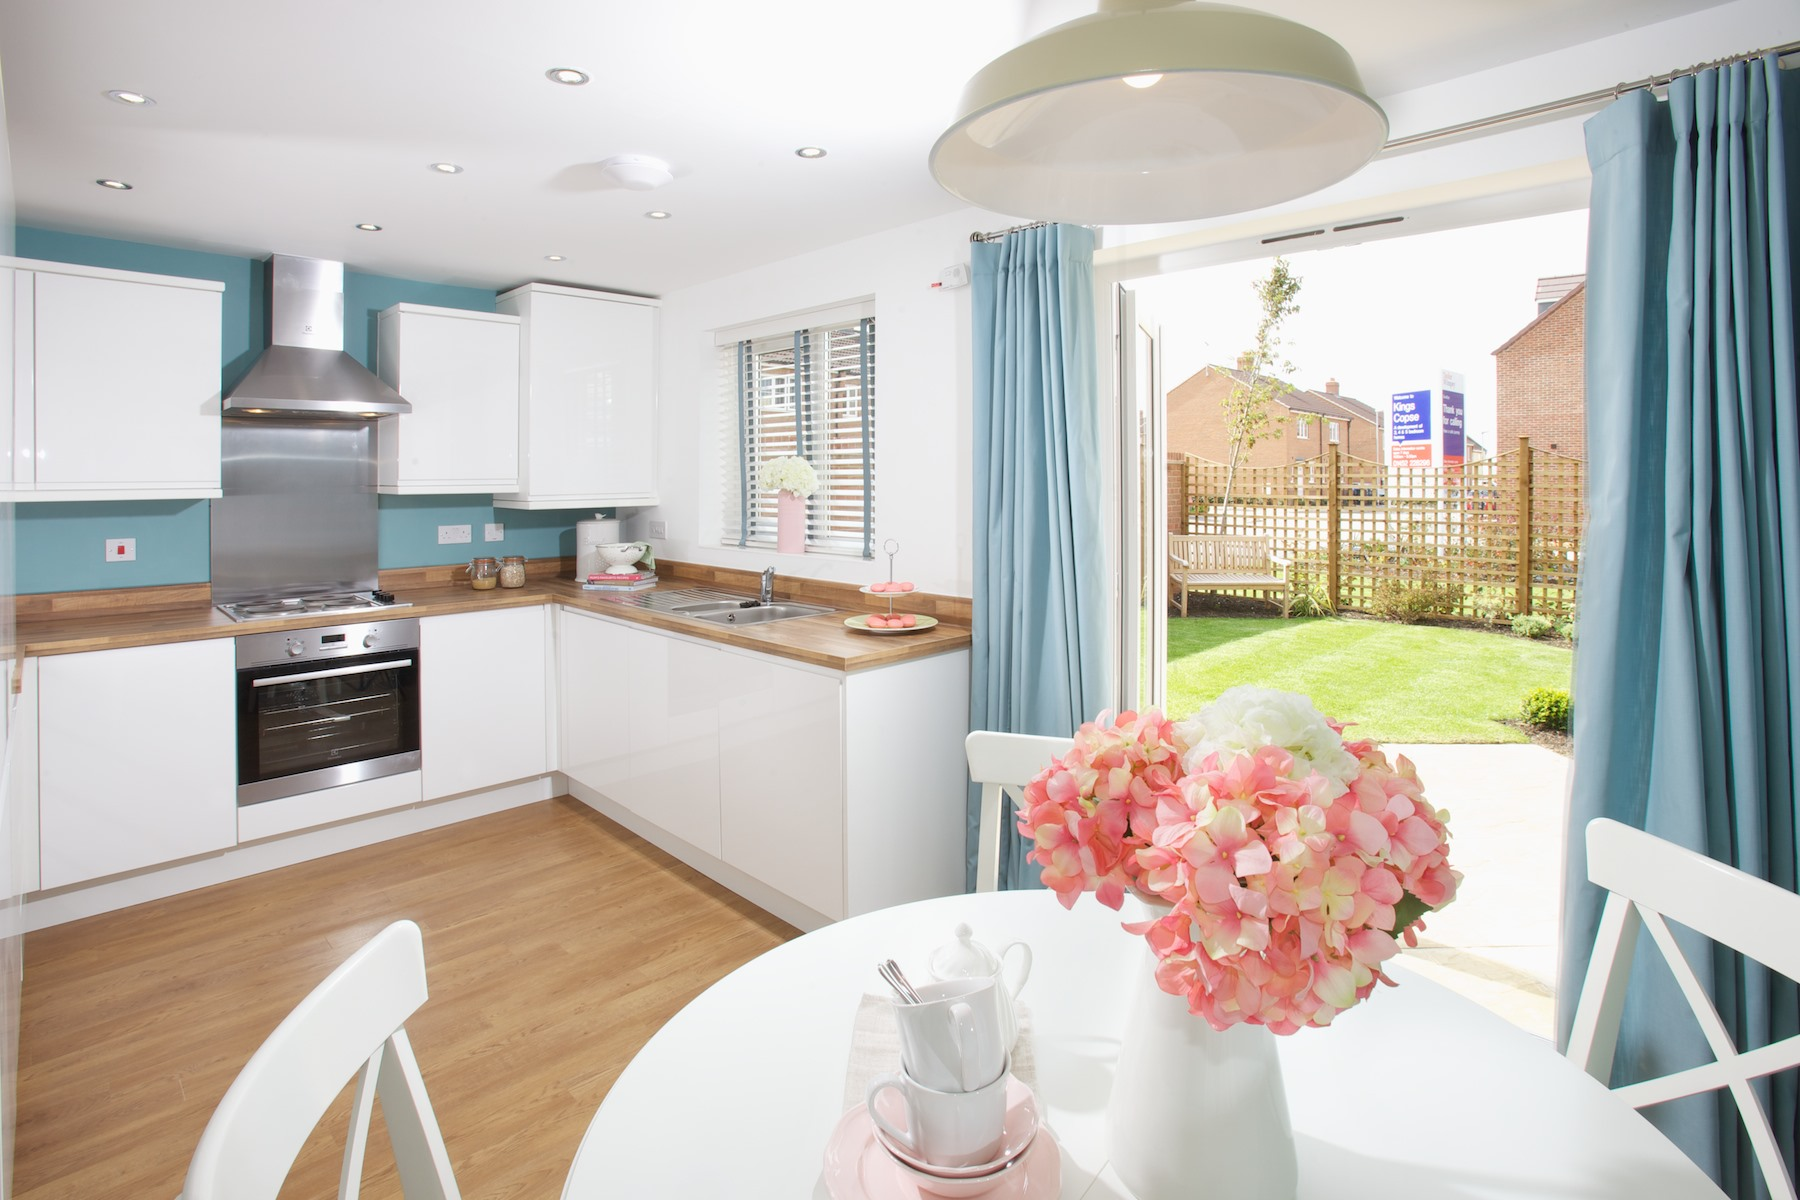 Kings Copse show home - Kitchen/dining area